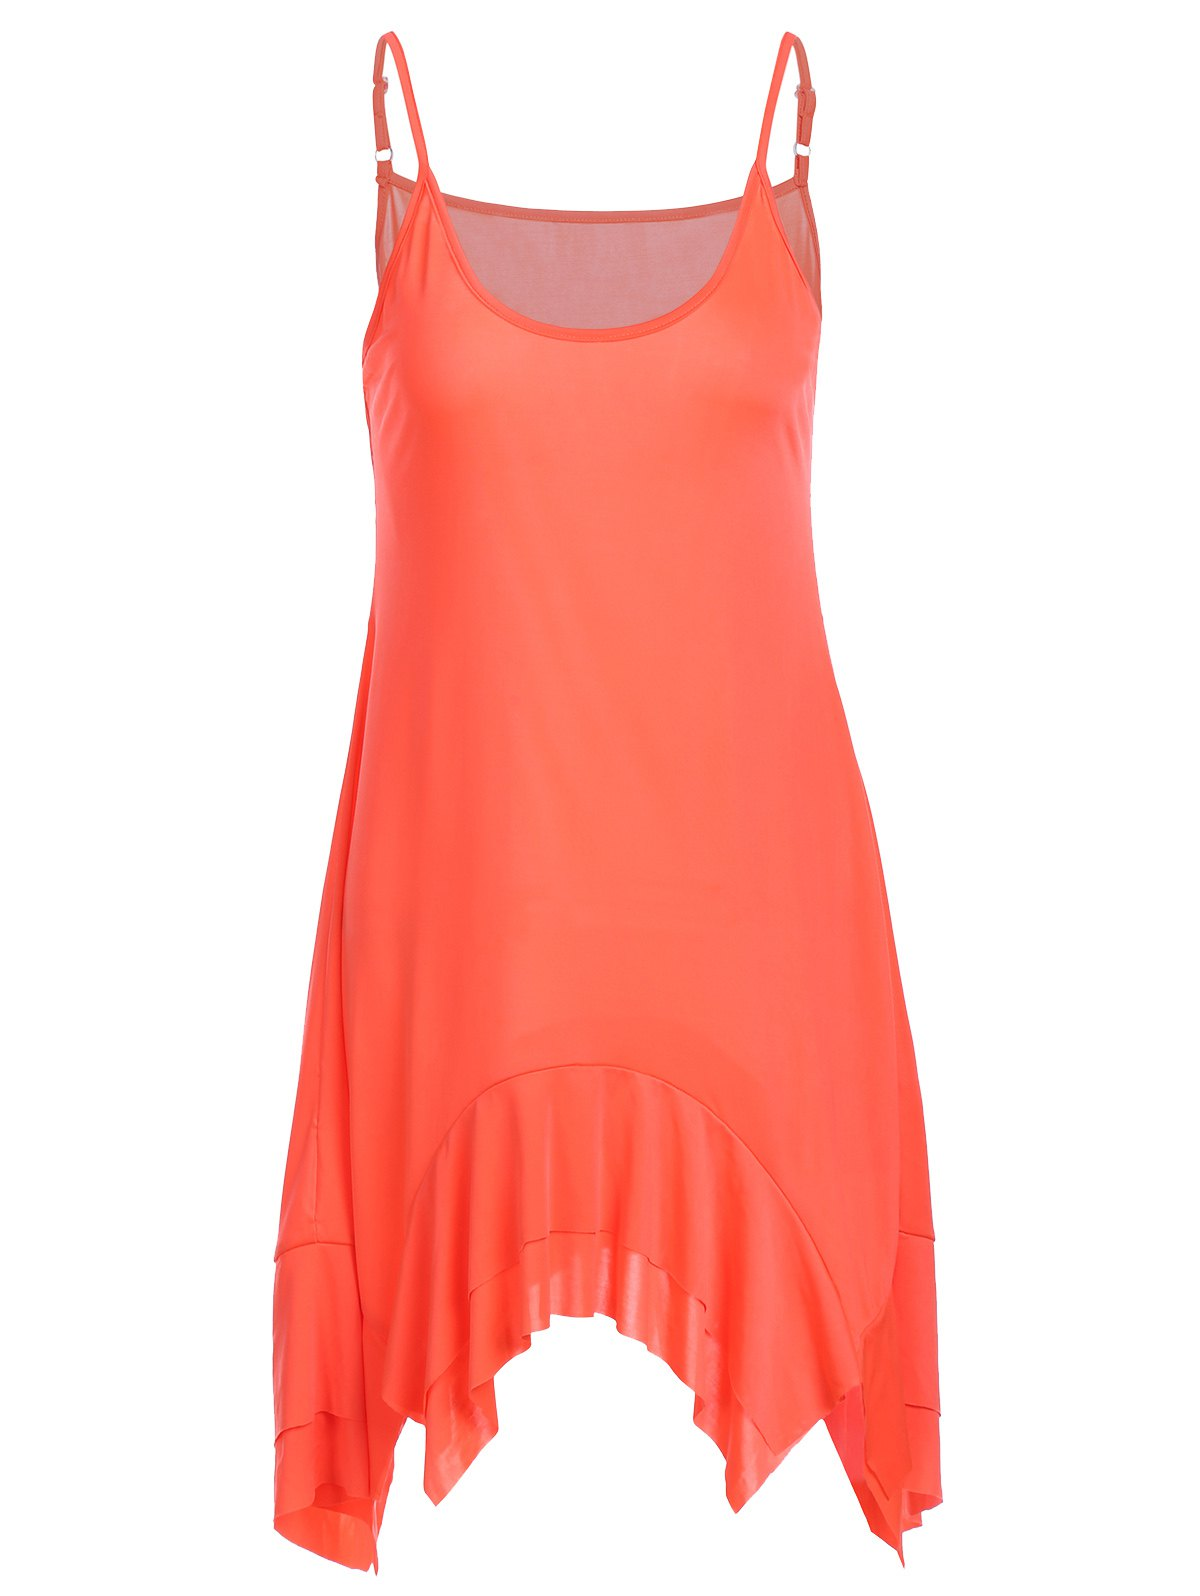 Trendy Spaghetti Strap Solid Color Asymmetrical Women's Dress - ORANGE S